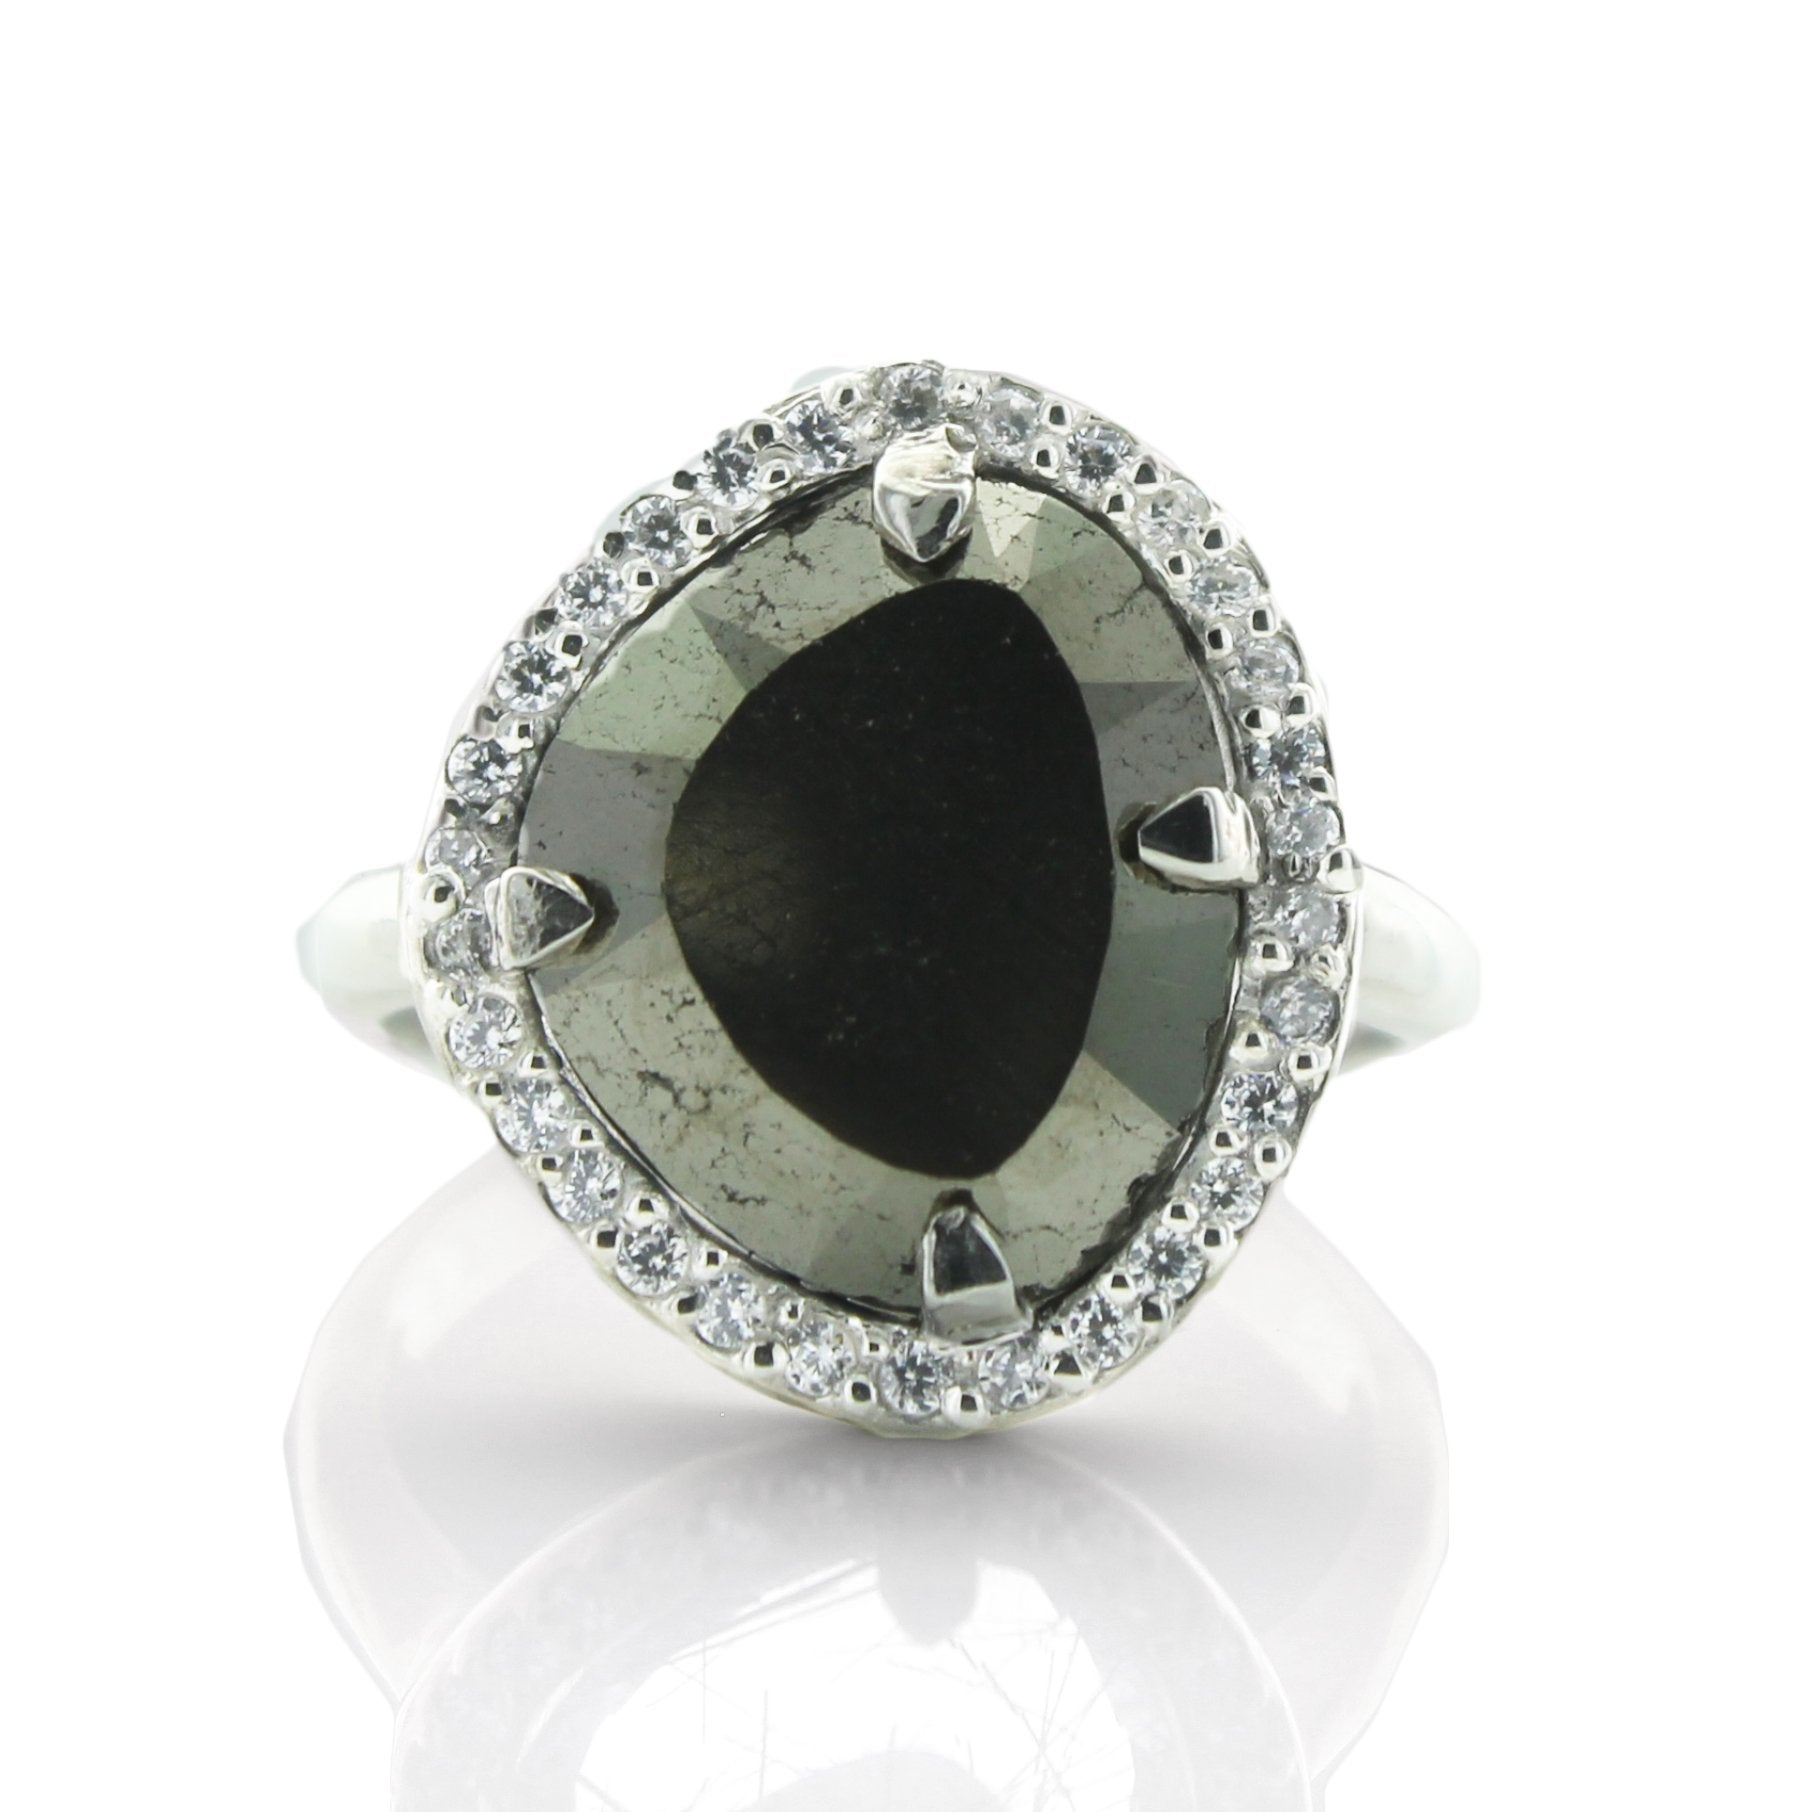 DREAM LUNA COCKTAIL RING - METALLIC PYRITE, CUBIC ZIRCONIA & SILVER - SO PRETTY CARA COTTER